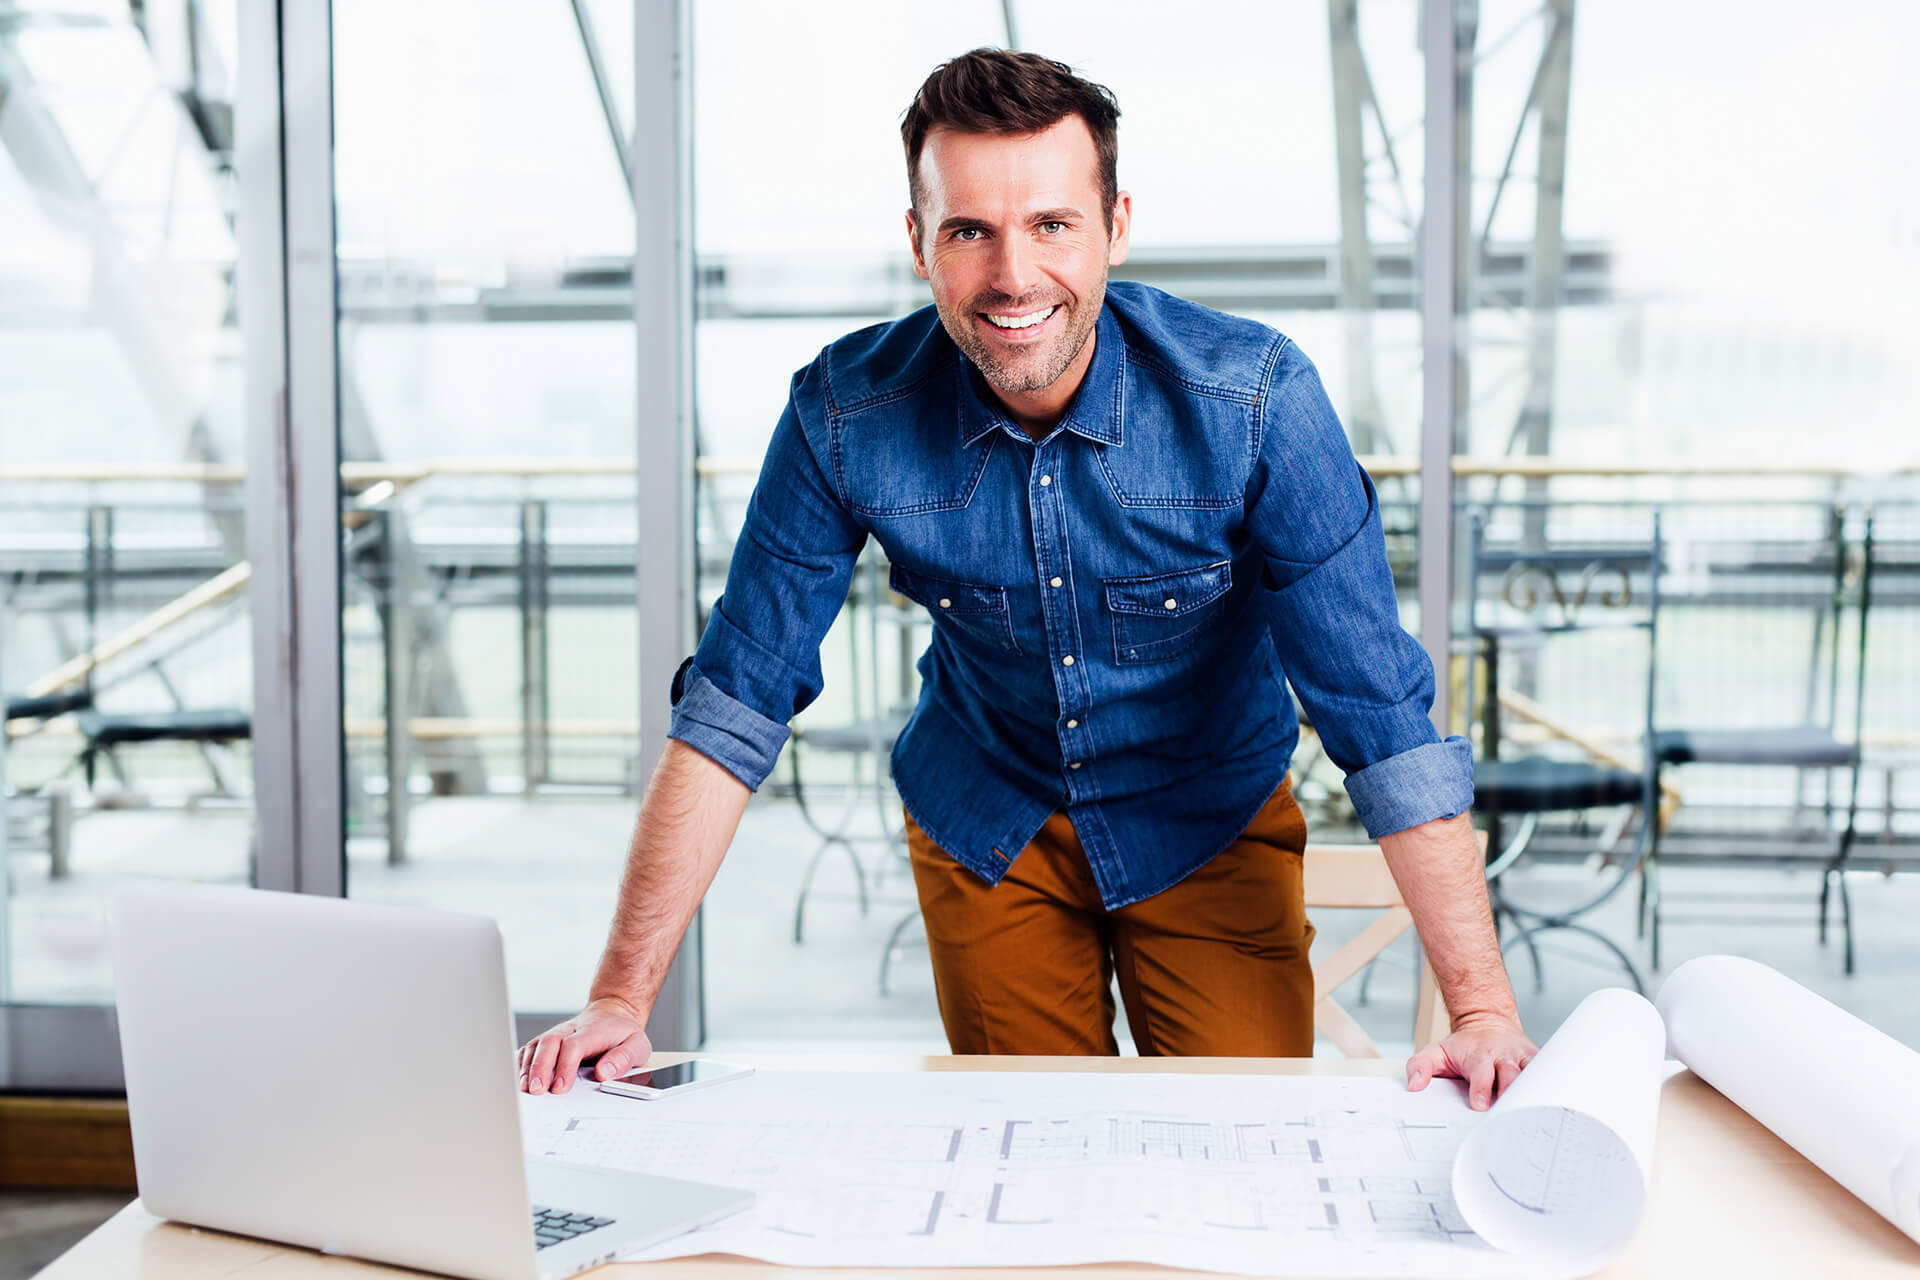 An Architect Standing over Drawings at the Office